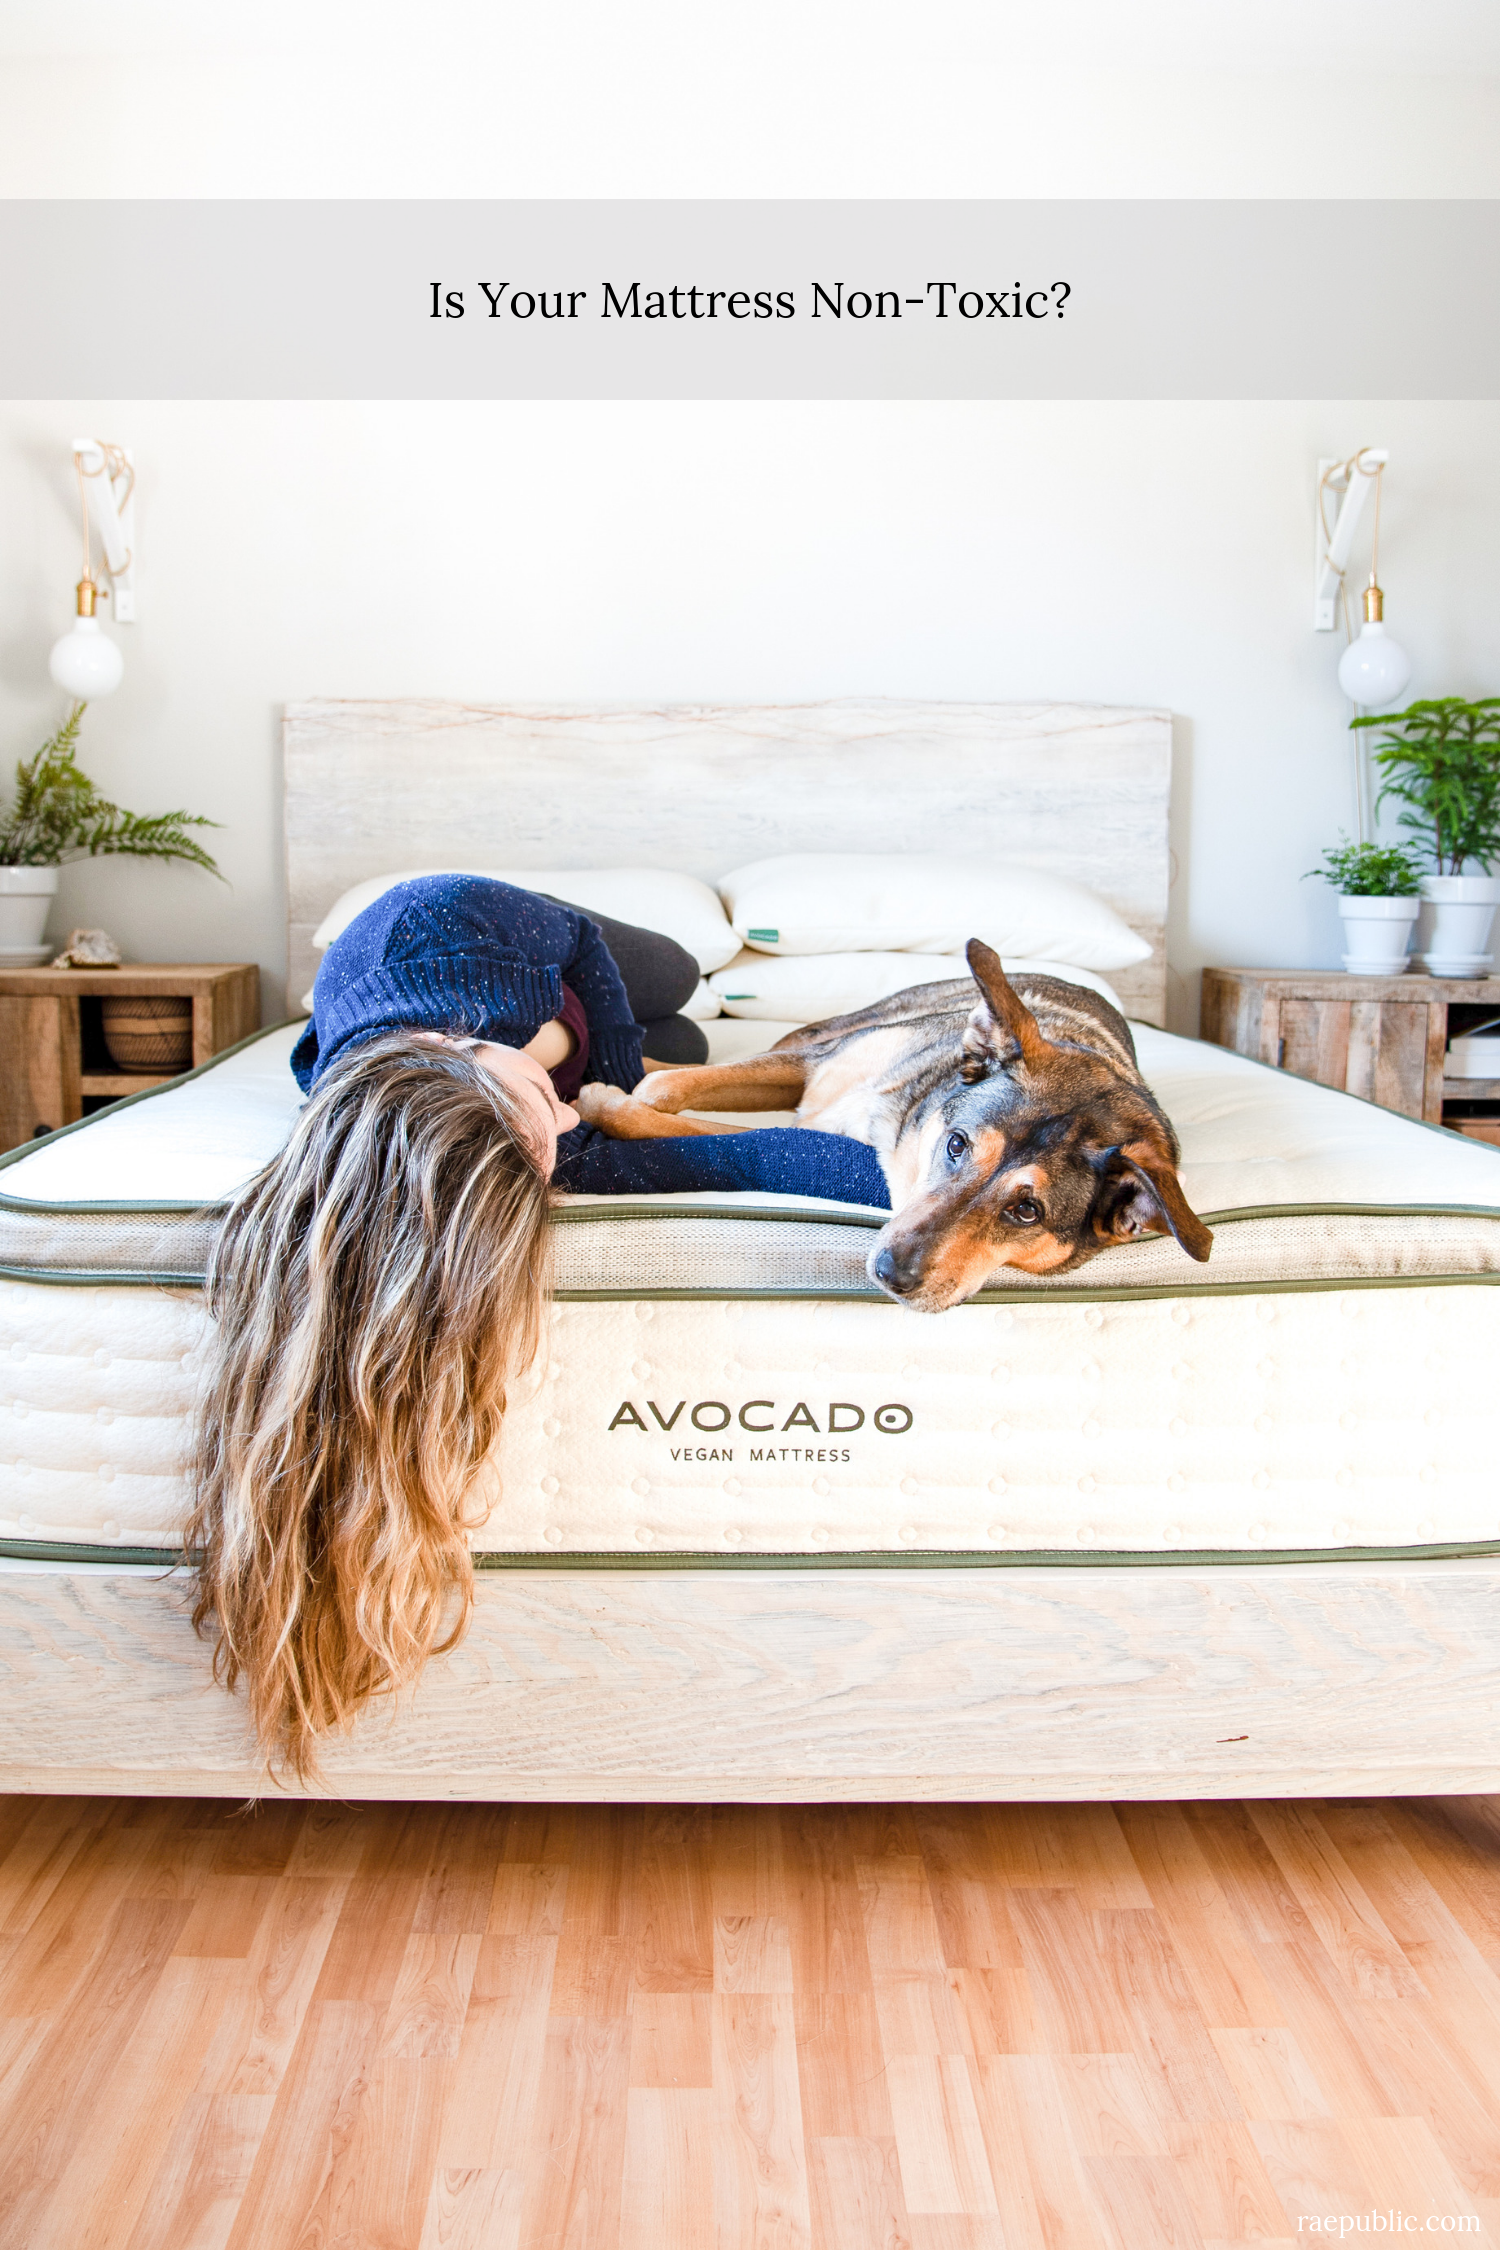 Green mattress that is vegan and non-toxic.